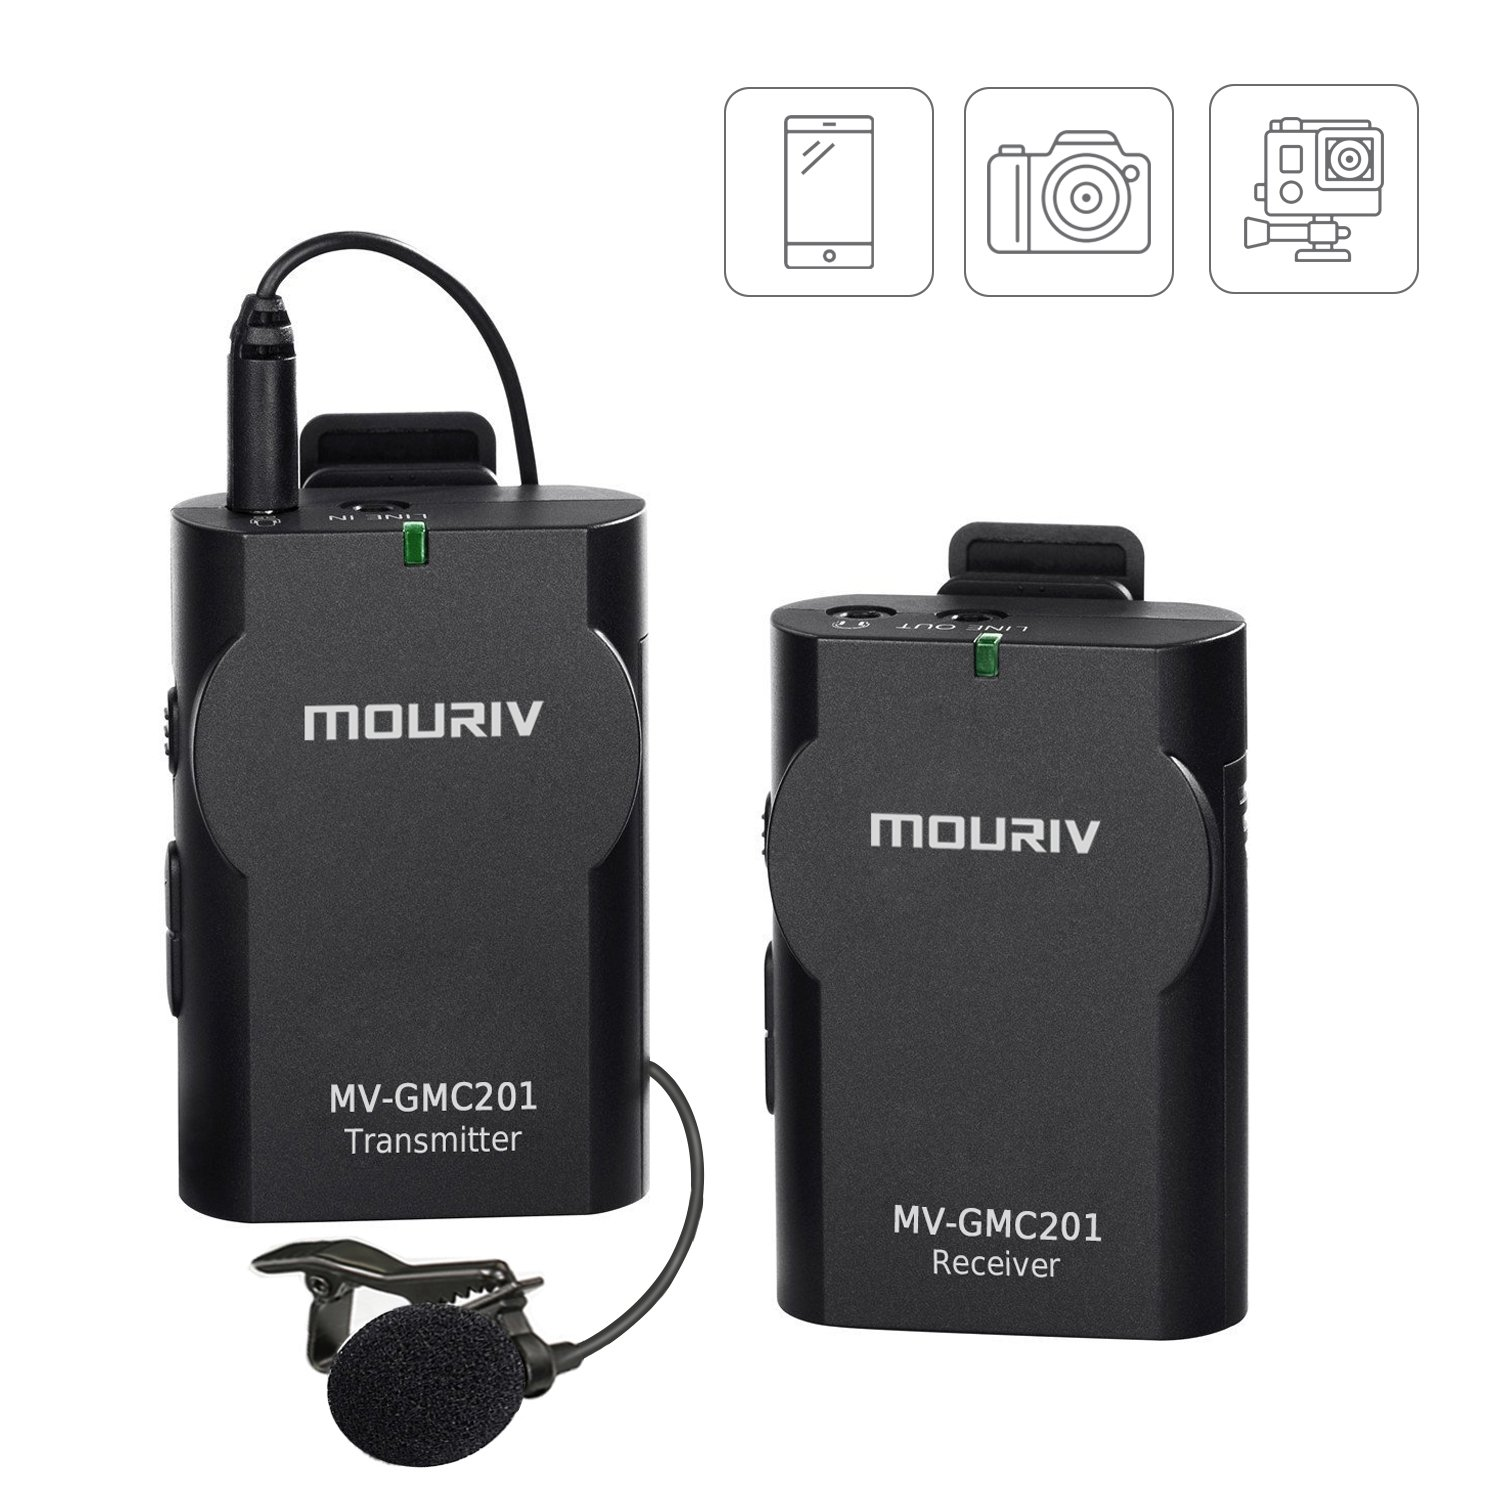 Newest MOURIV MV-GMC201 2.4G Universal Lavalier Wireless Microphone System Lapel Mic with Real-time Monitor for DSLR Camera, Camcorder, IOS iPhone, Android Smartphone Phone, Tablet, Gopro 3,3+, 4 4332801727